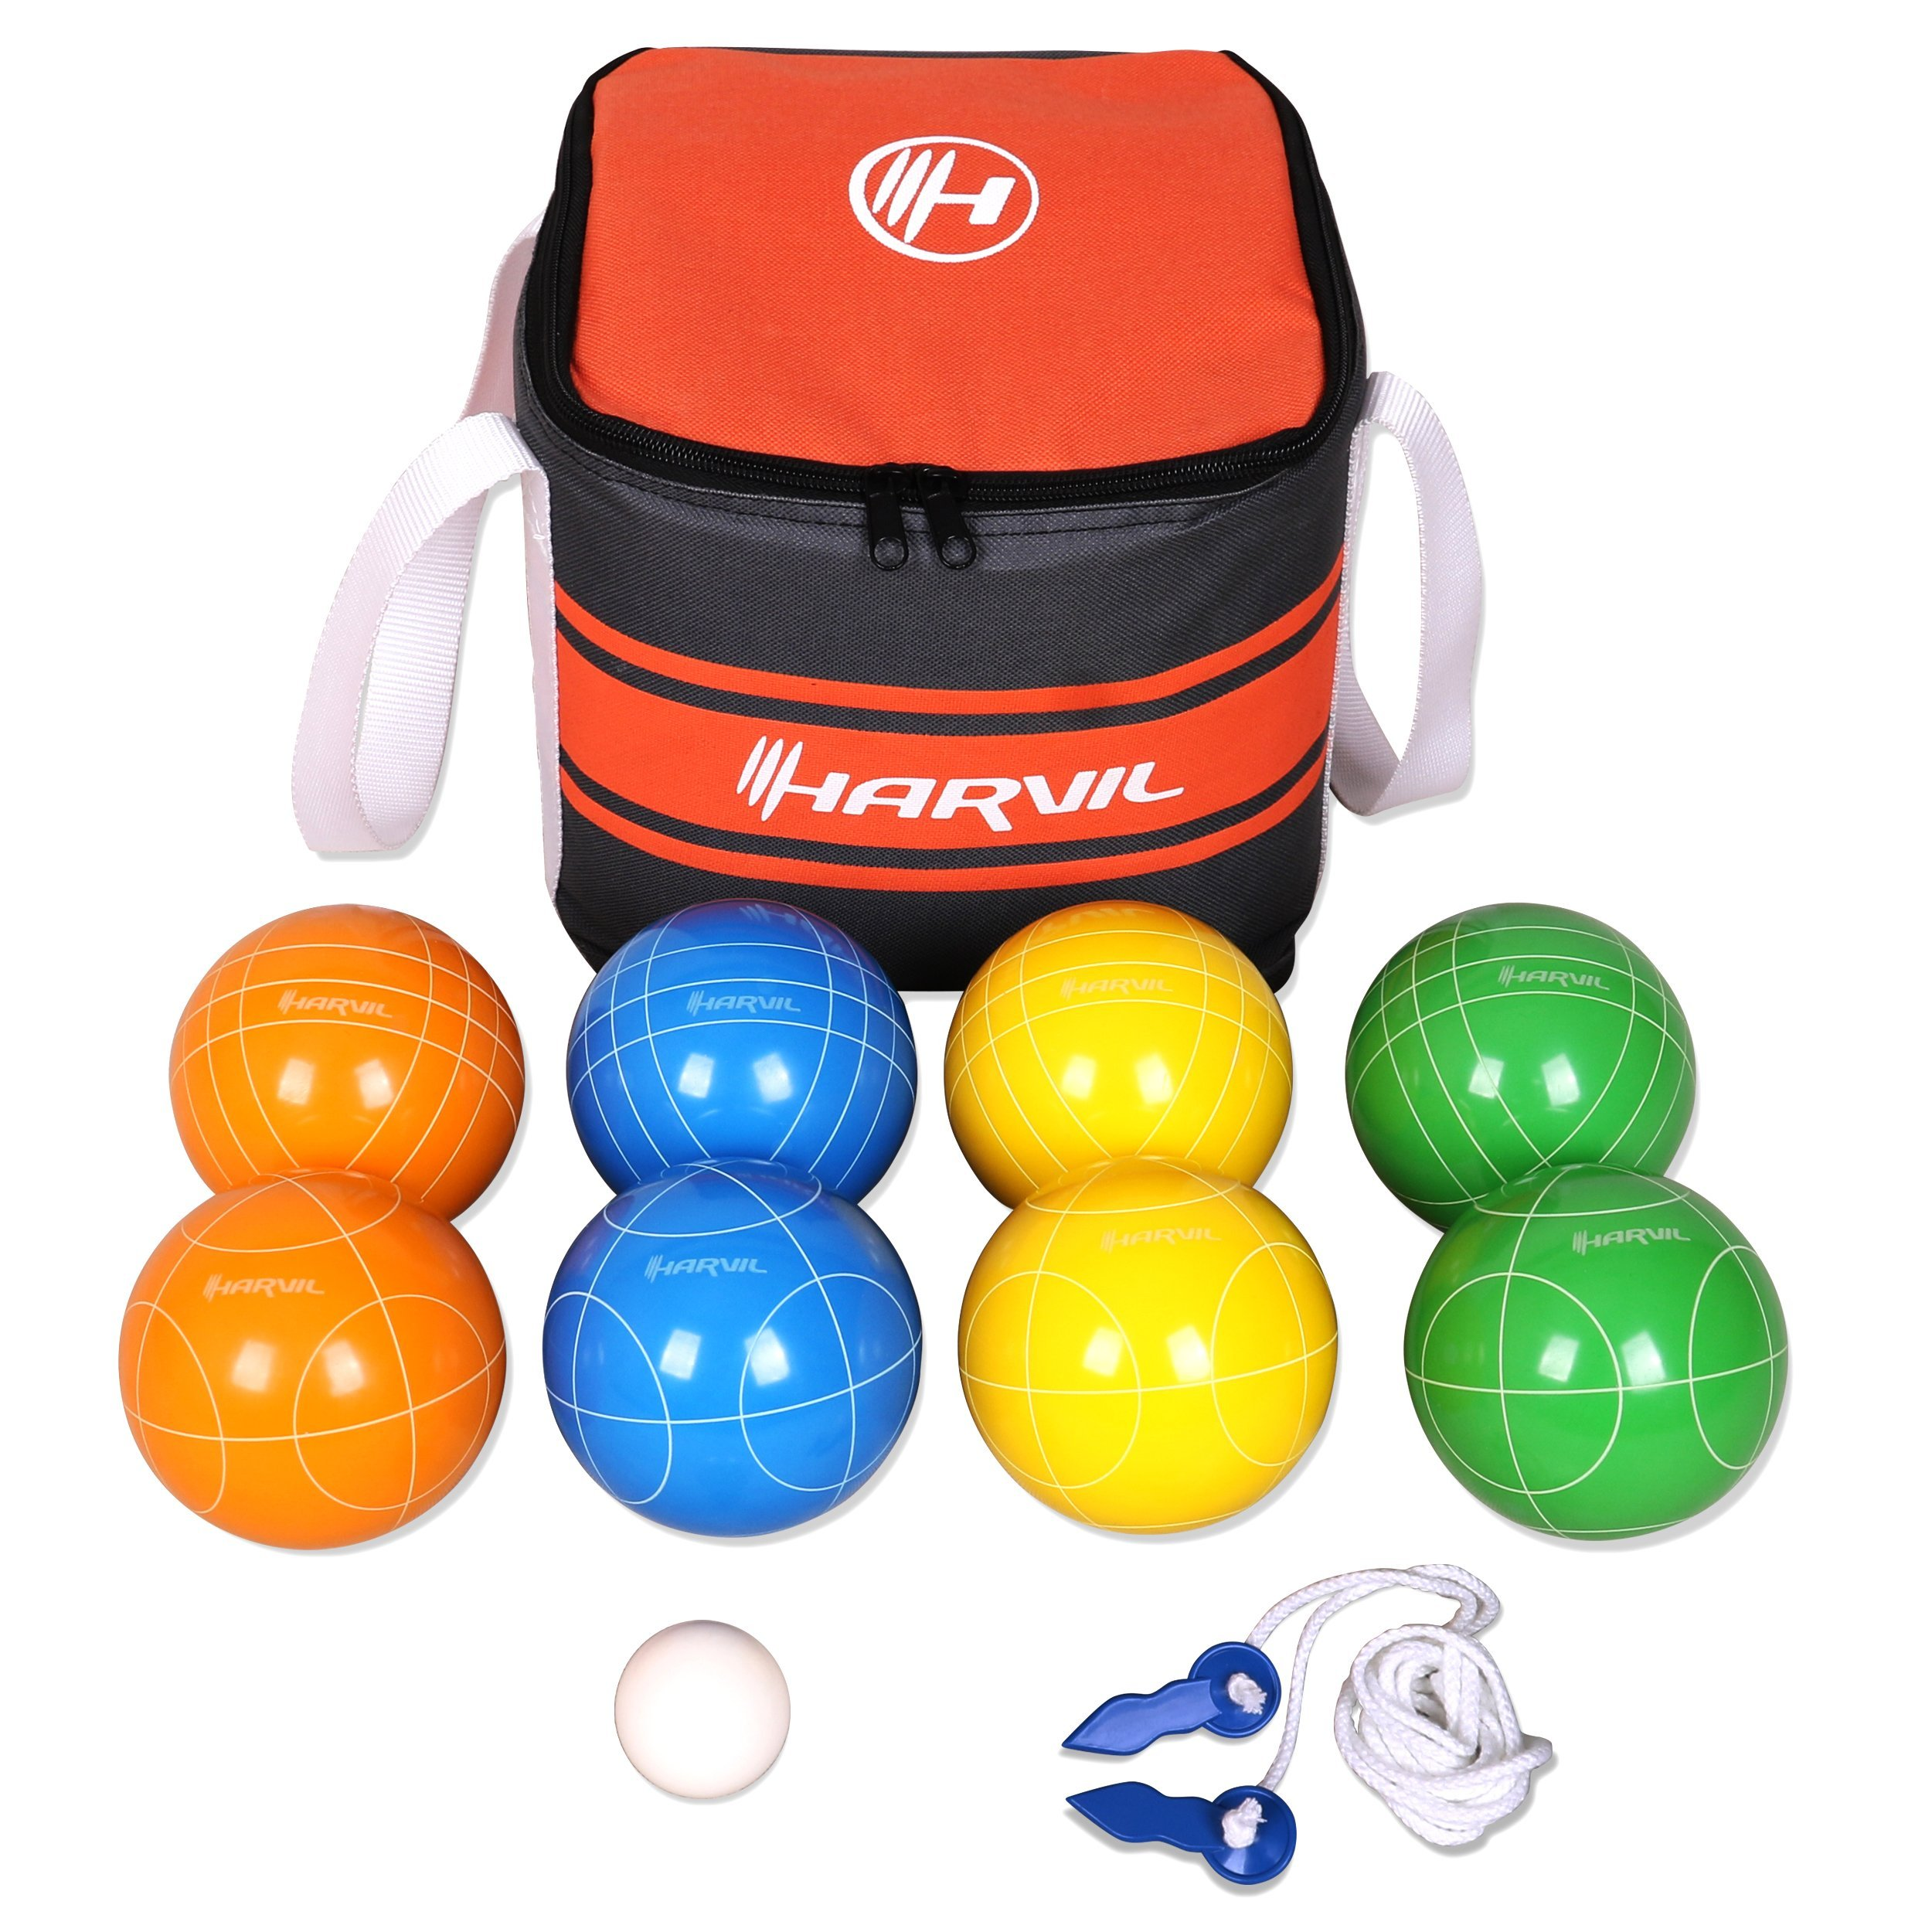 Harvil 90mm Bocce Ball Set. Includes 8 Poly-Resin Balls, 1 Pallino, 1 Nylon Zip-up Carrying Case Measuring Rope by Harvil